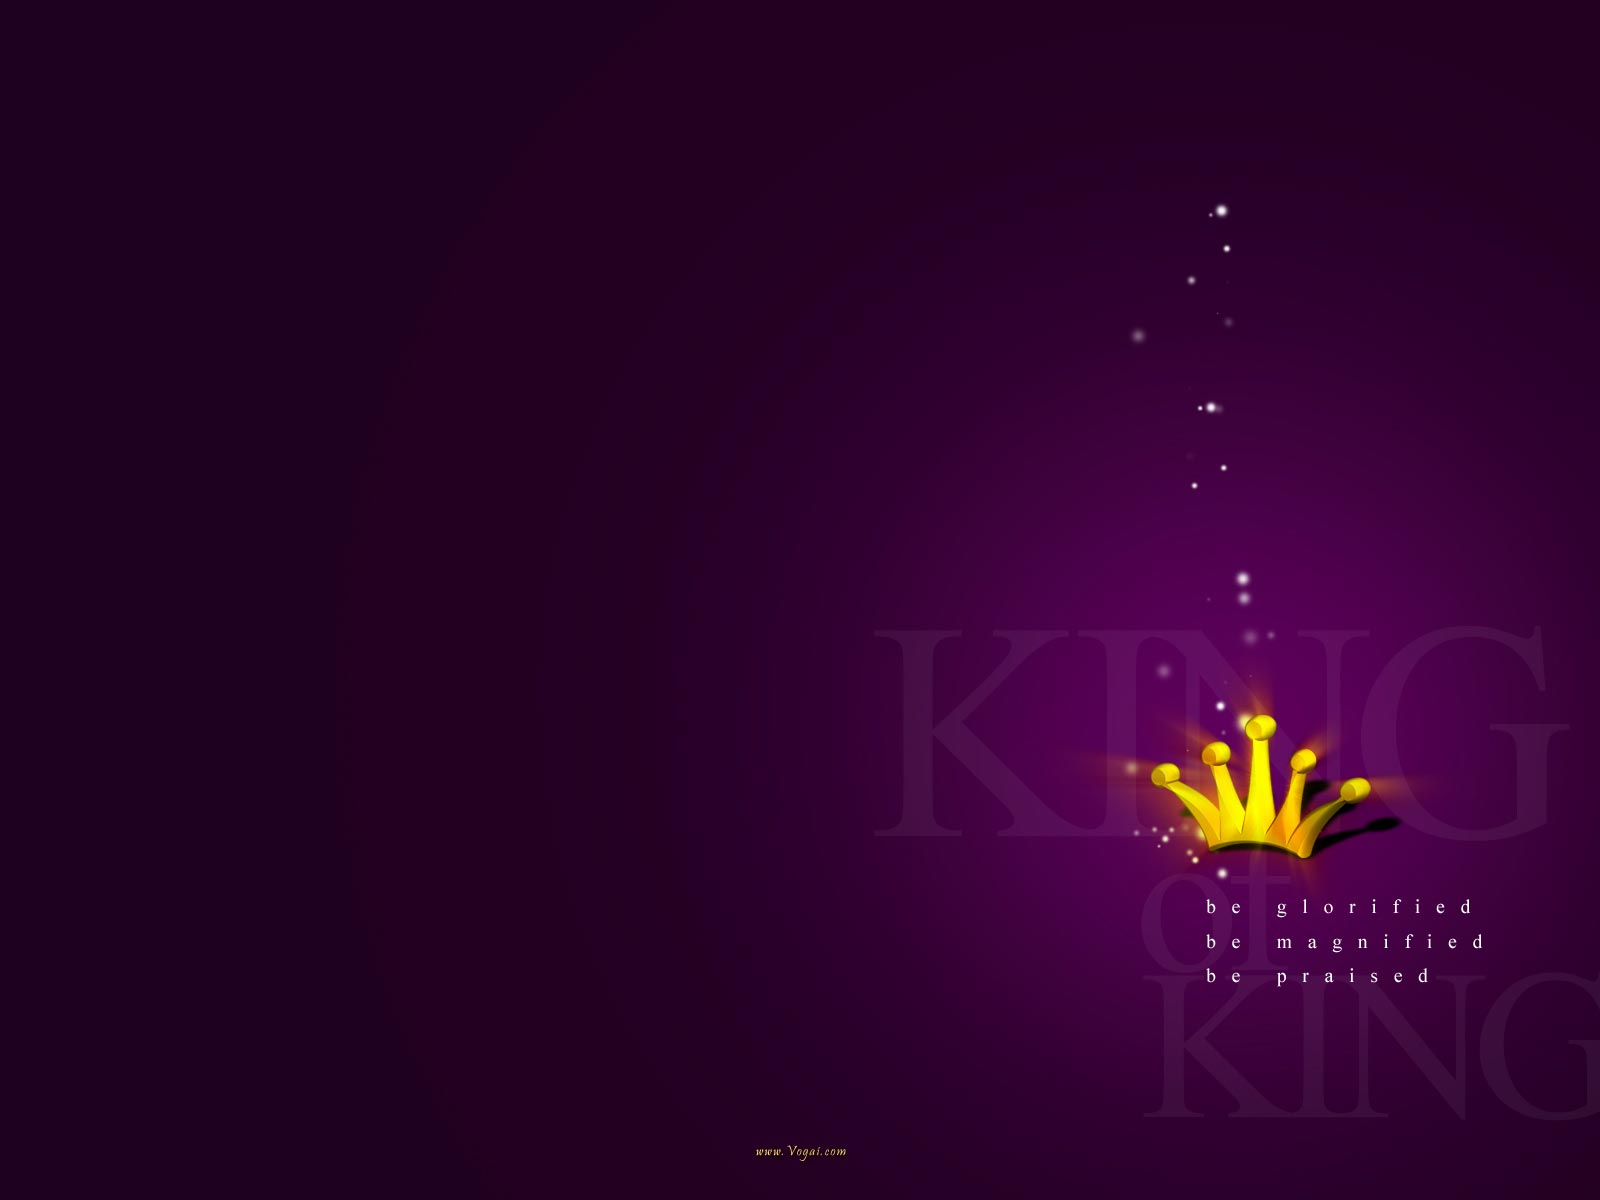 King of king vogai design art and technology the christian powerpoint template king toneelgroepblik Choice Image